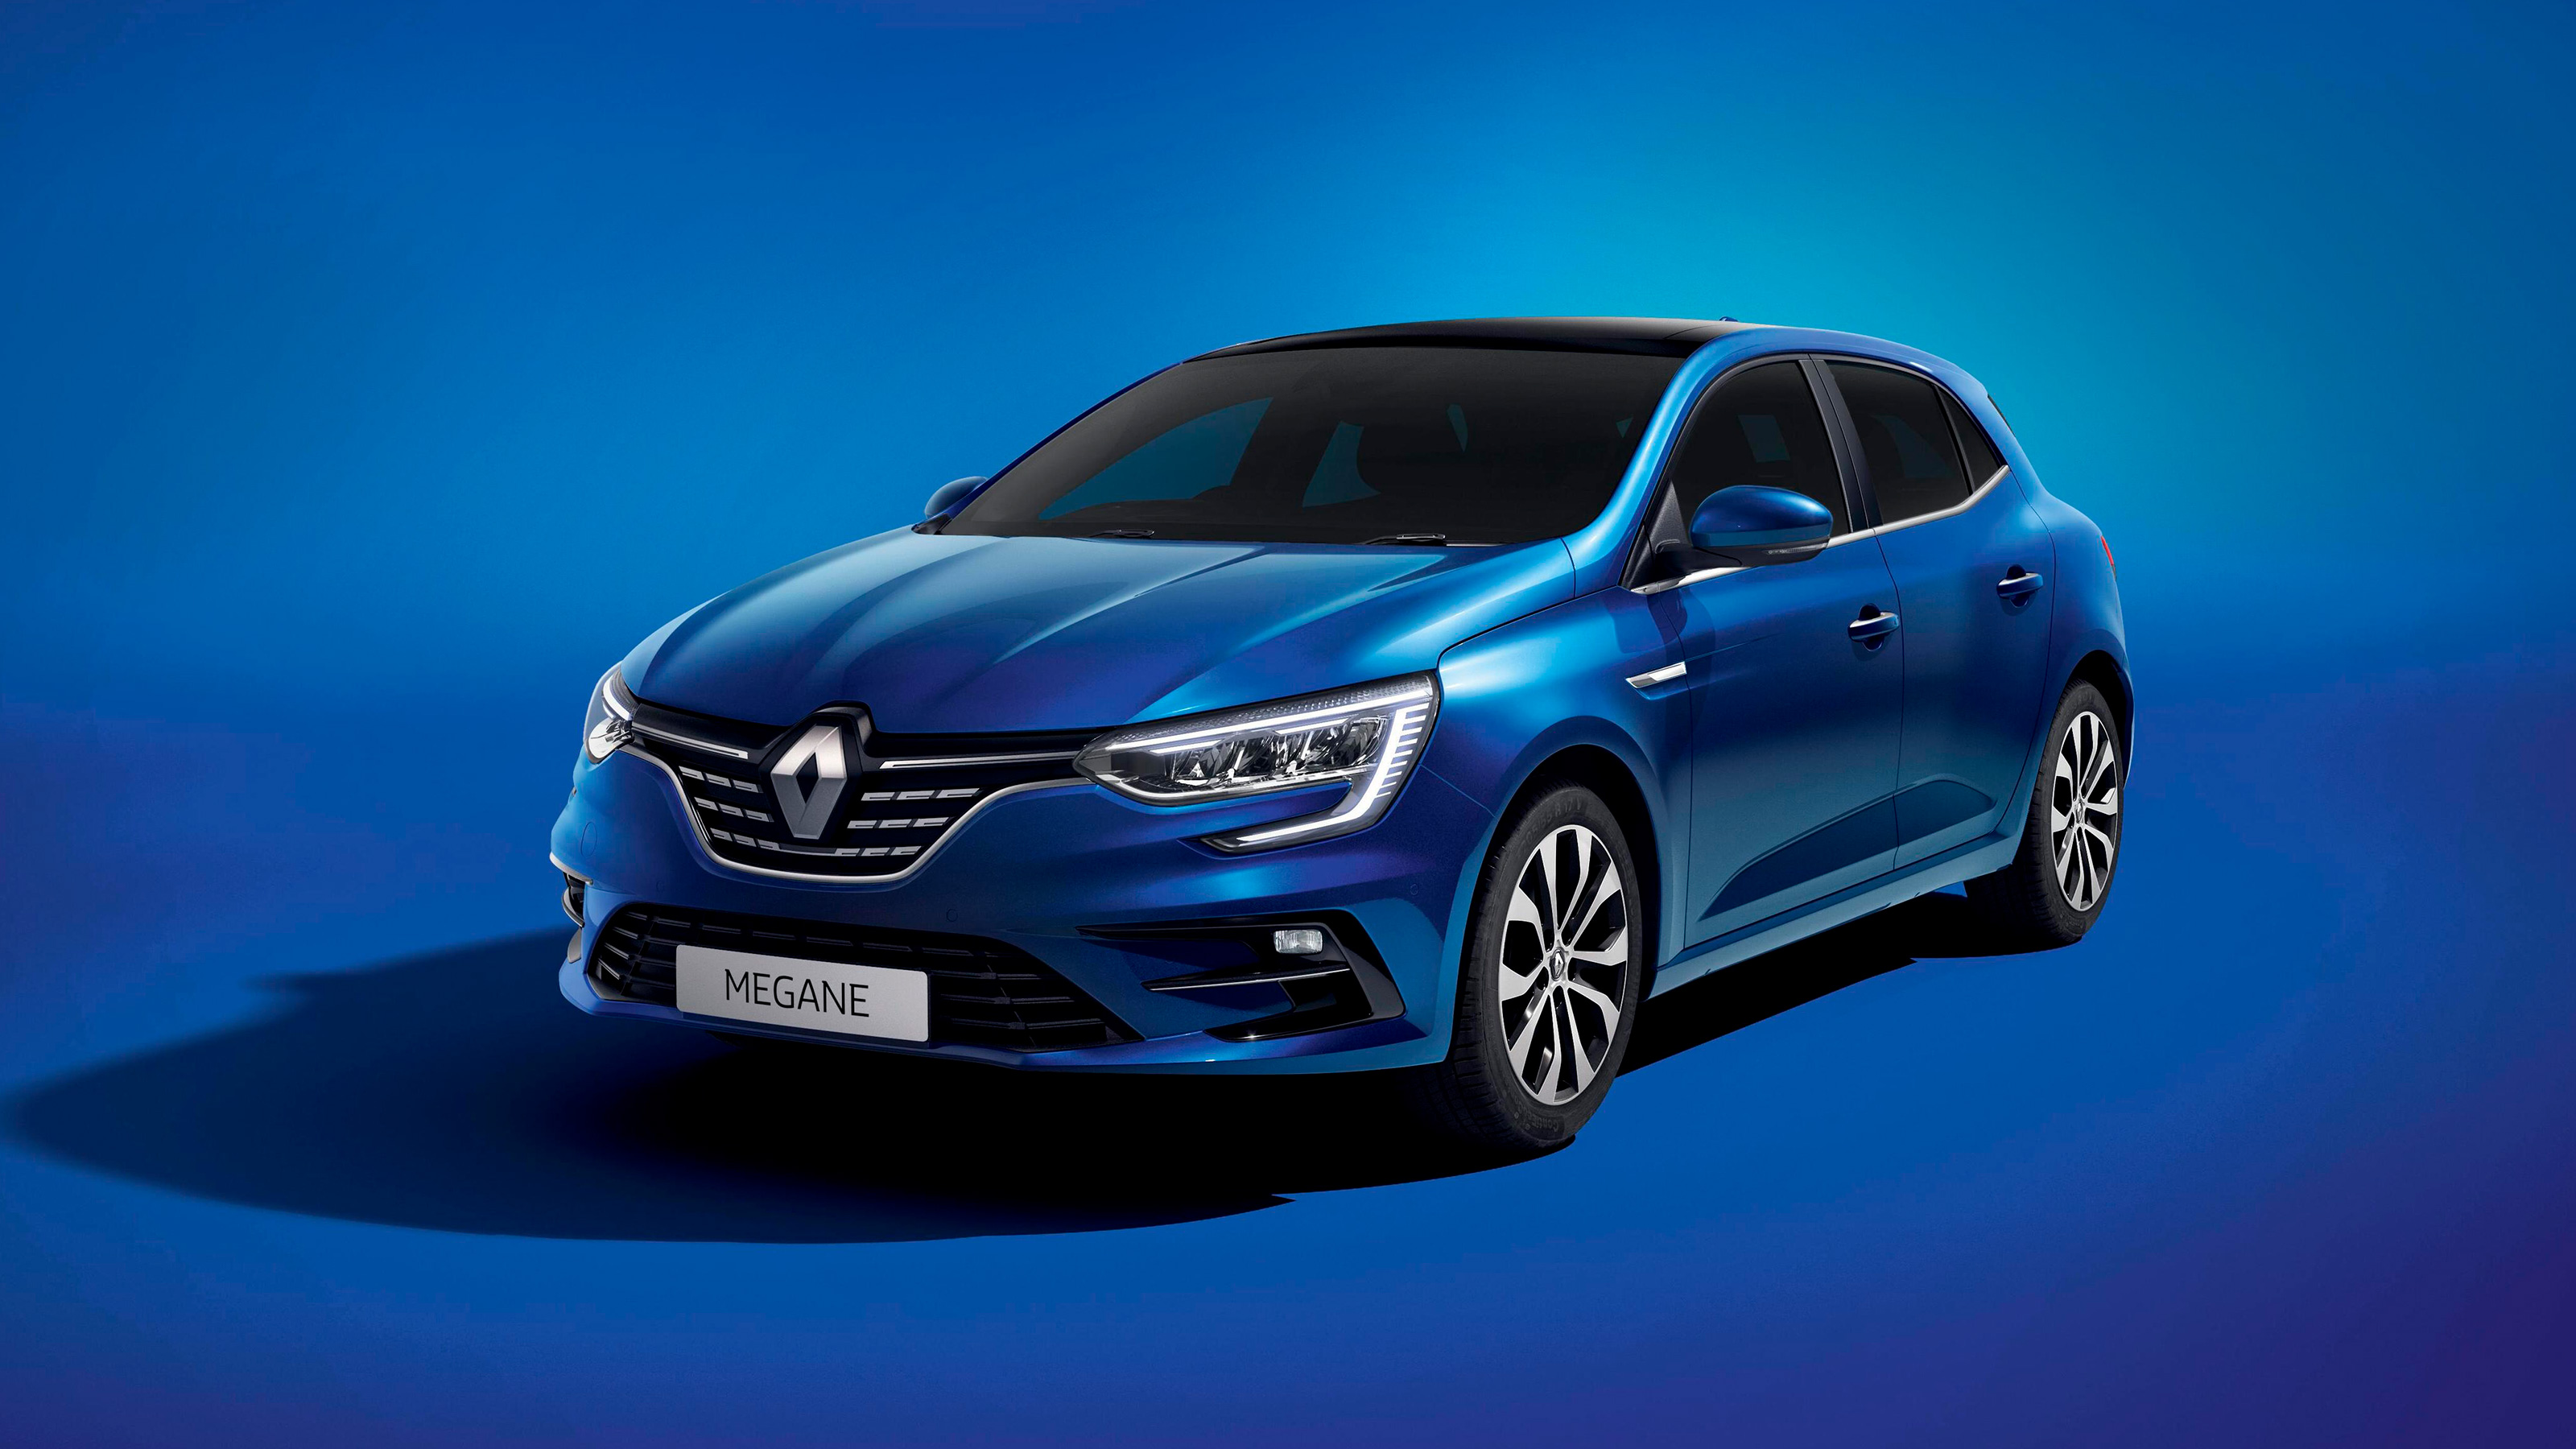 New 2020 Renault Megane facelift: prices confirmed | Auto ...